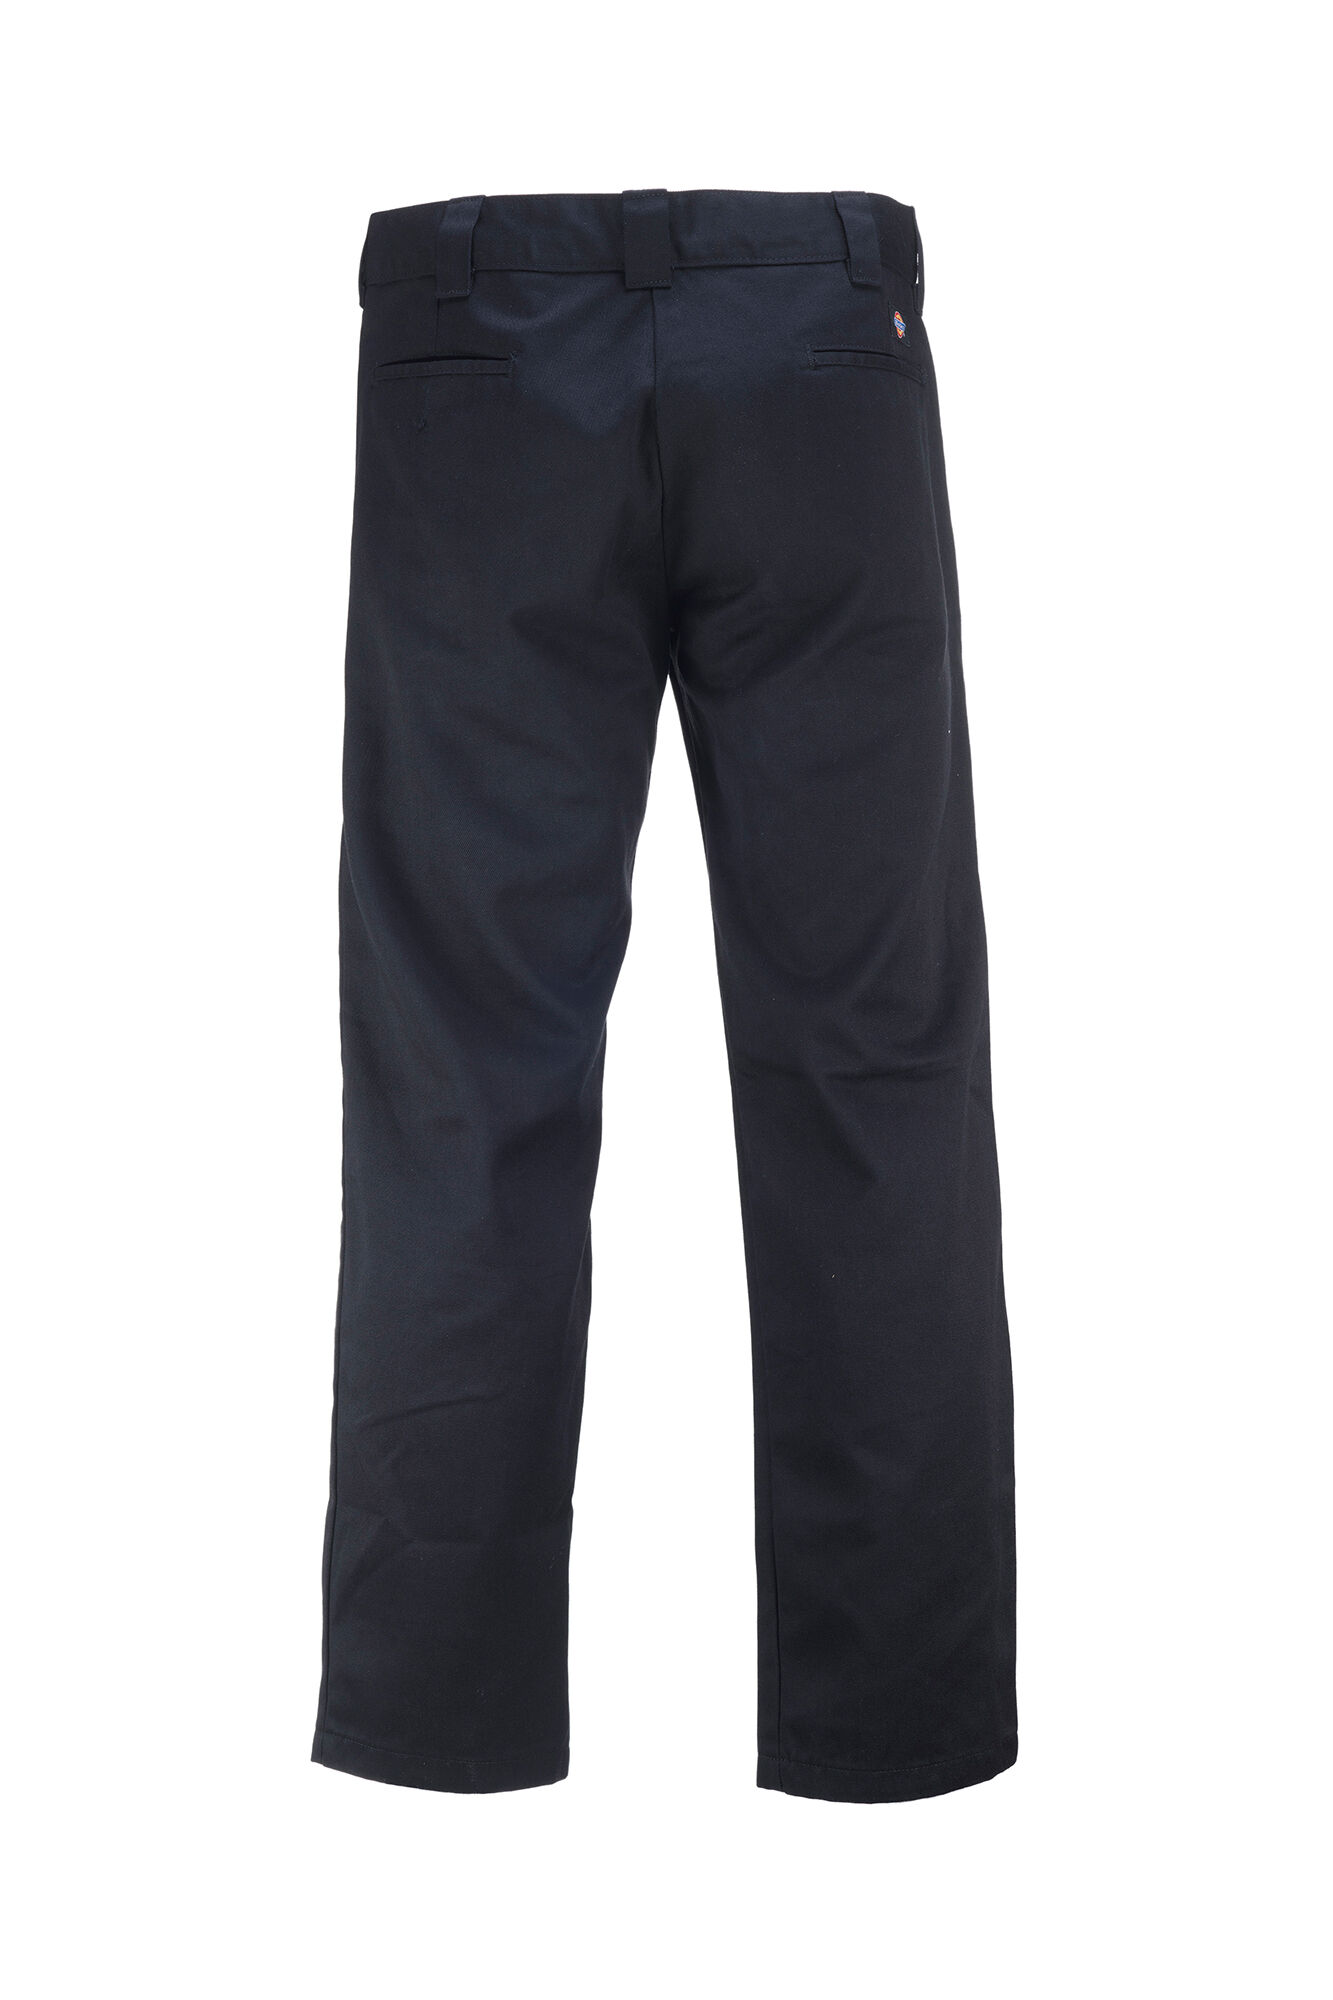 s/stght work pant WP873